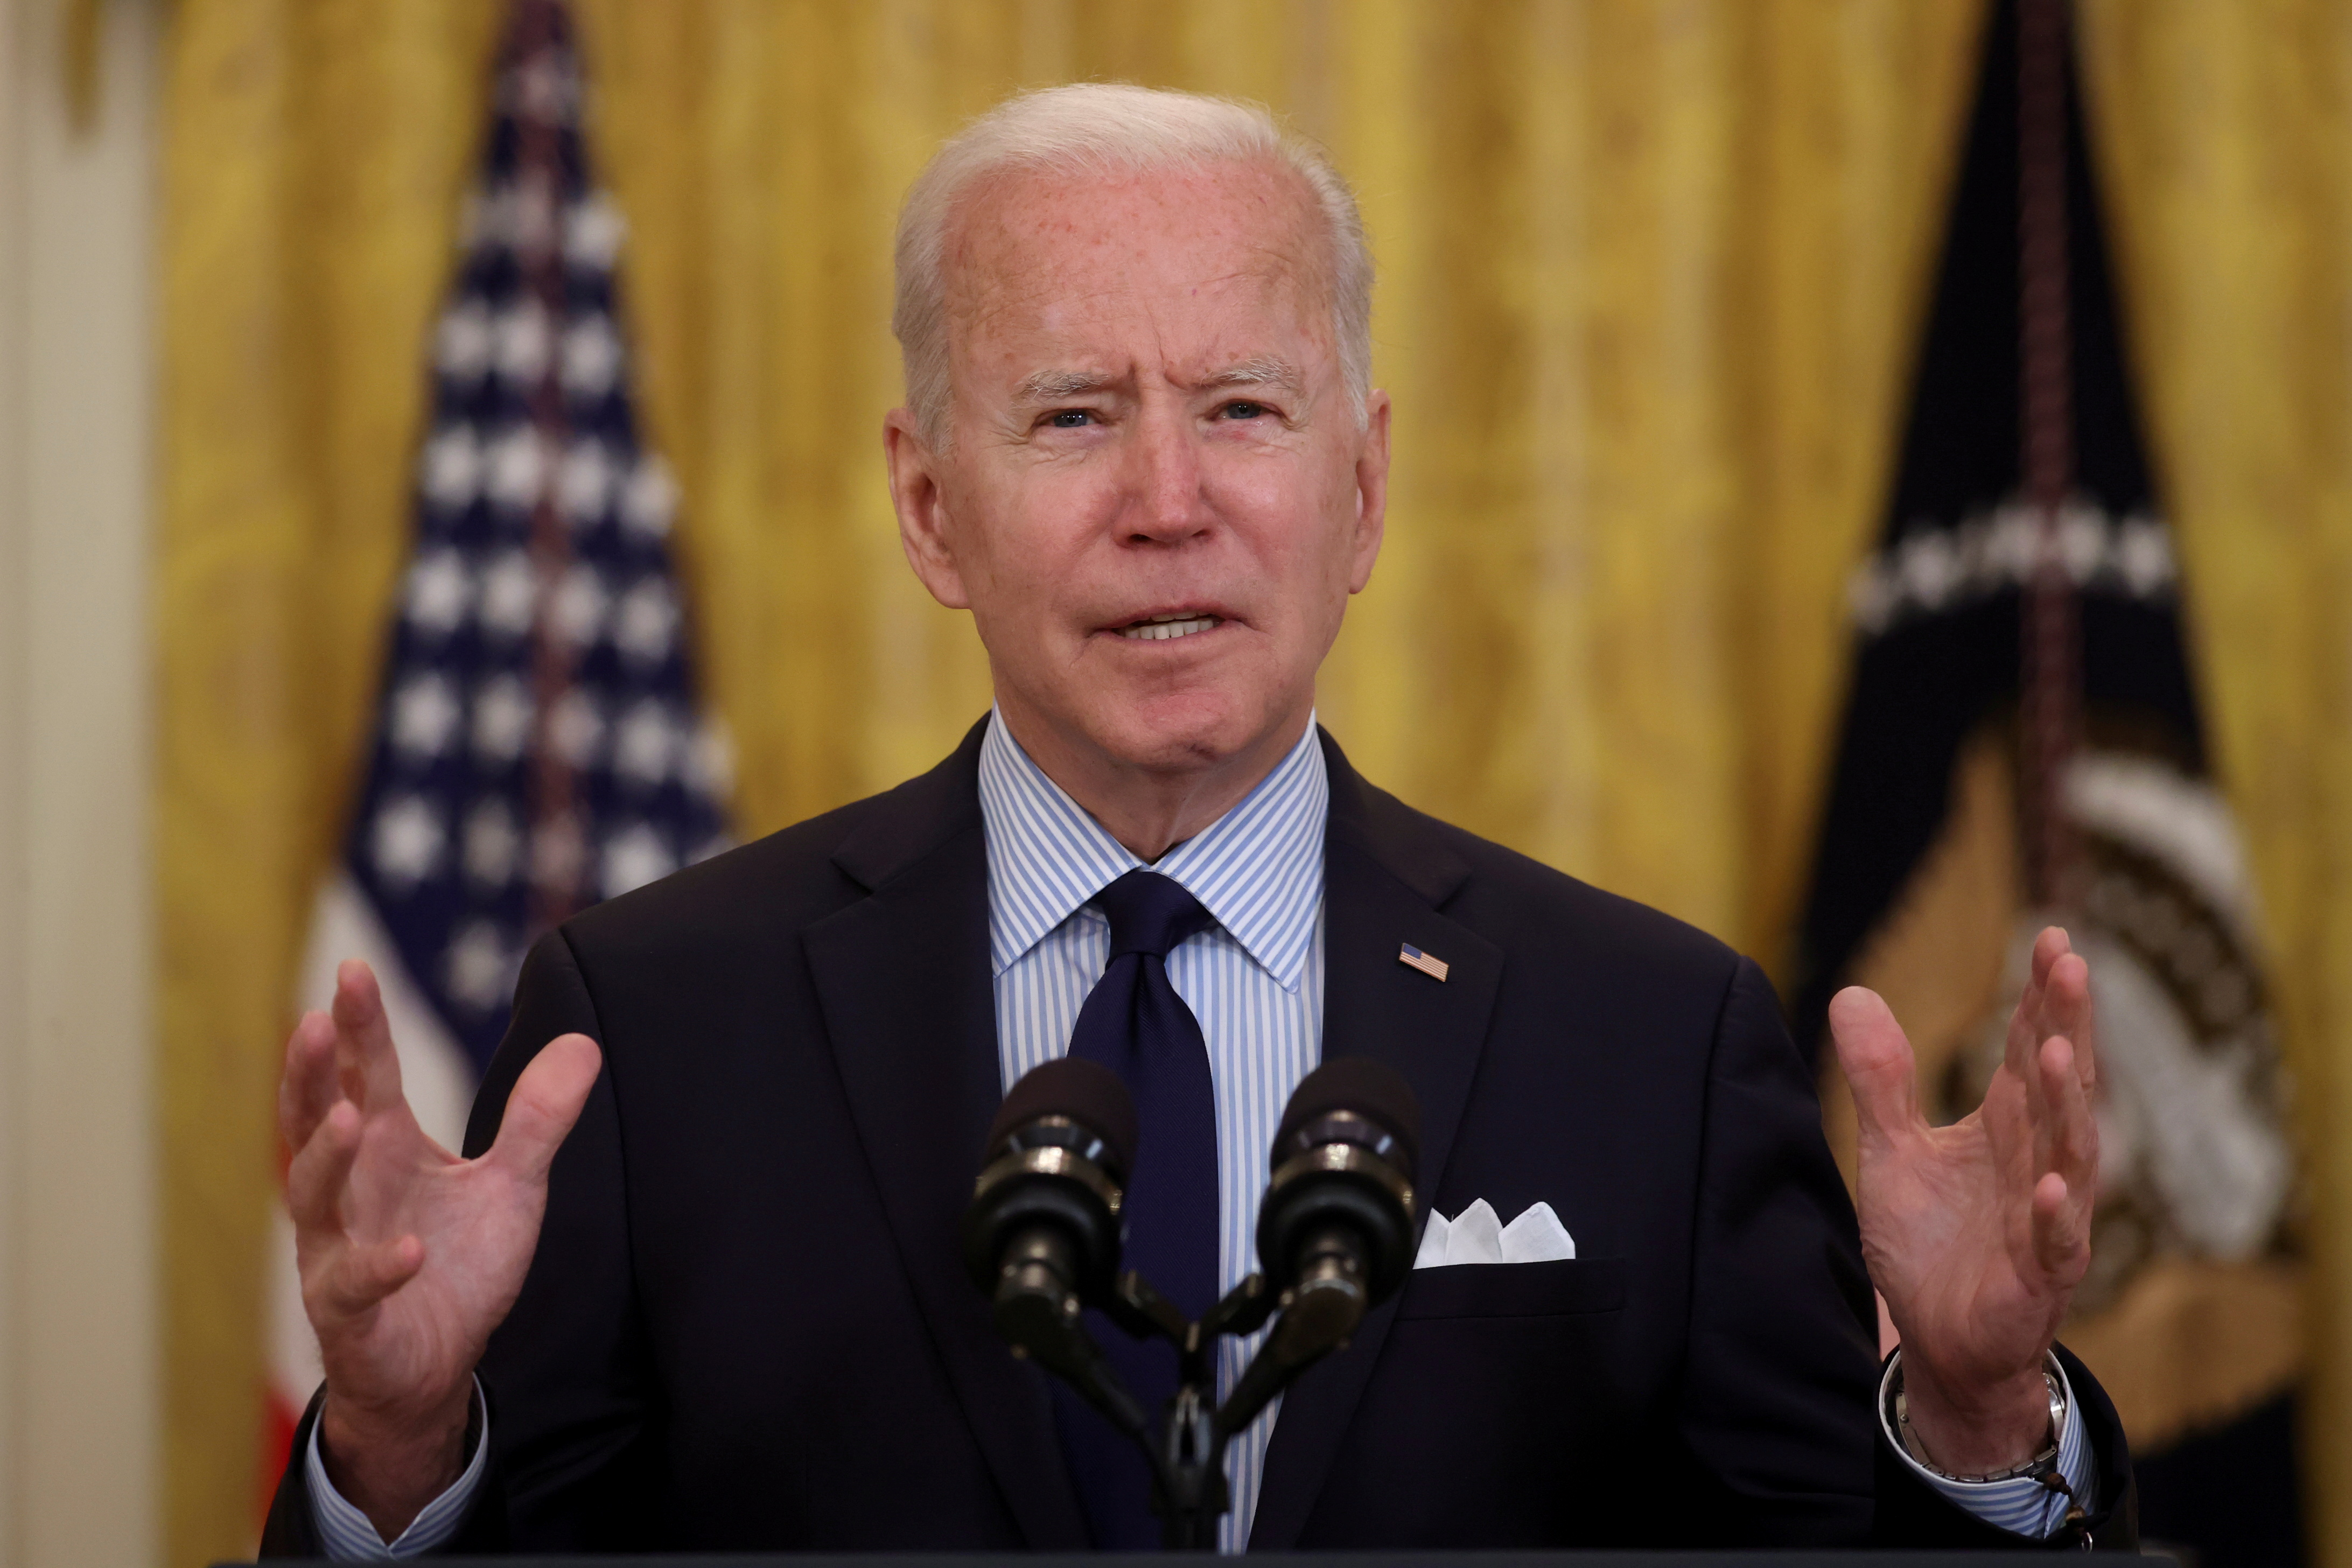 U.S. President Joe Biden delivers remarks on the April jobs report from the East Room of the White House in Washington, U.S., May 7, 2021.  REUTERS/Jonathan Ernst